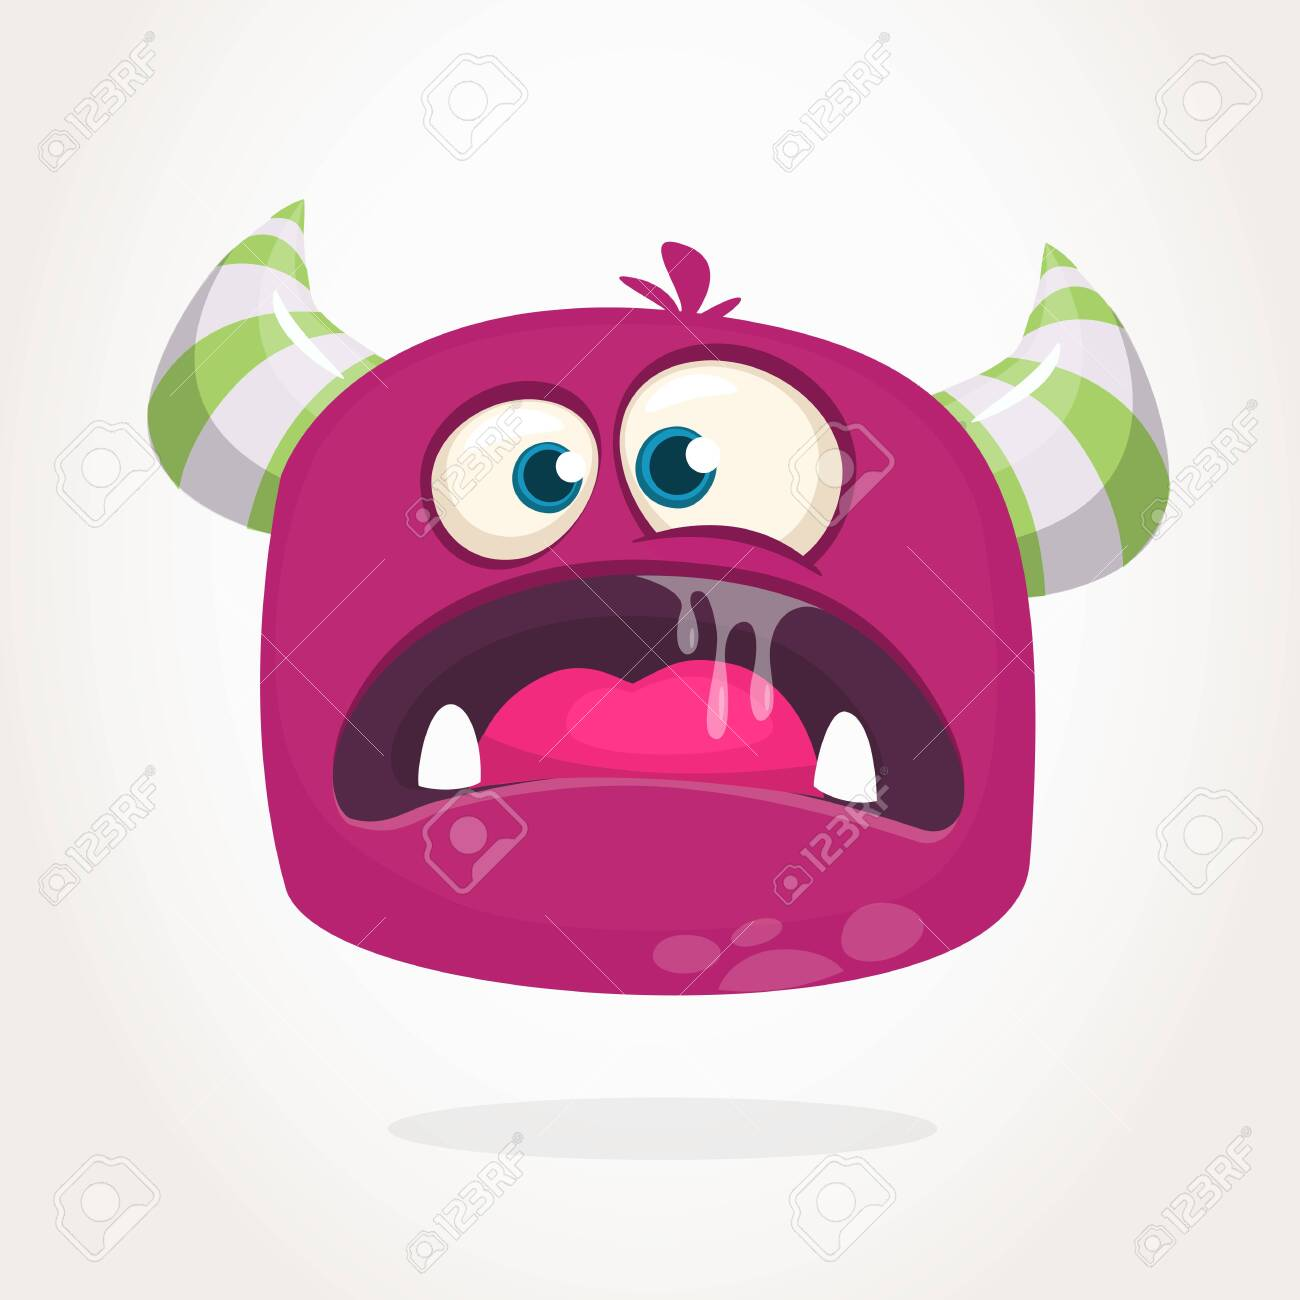 Angry Cartoon Monster With Horns Big Collection Of Cute Monsters Royalty Free Cliparts Vectors And Stock Illustration Image 141113110